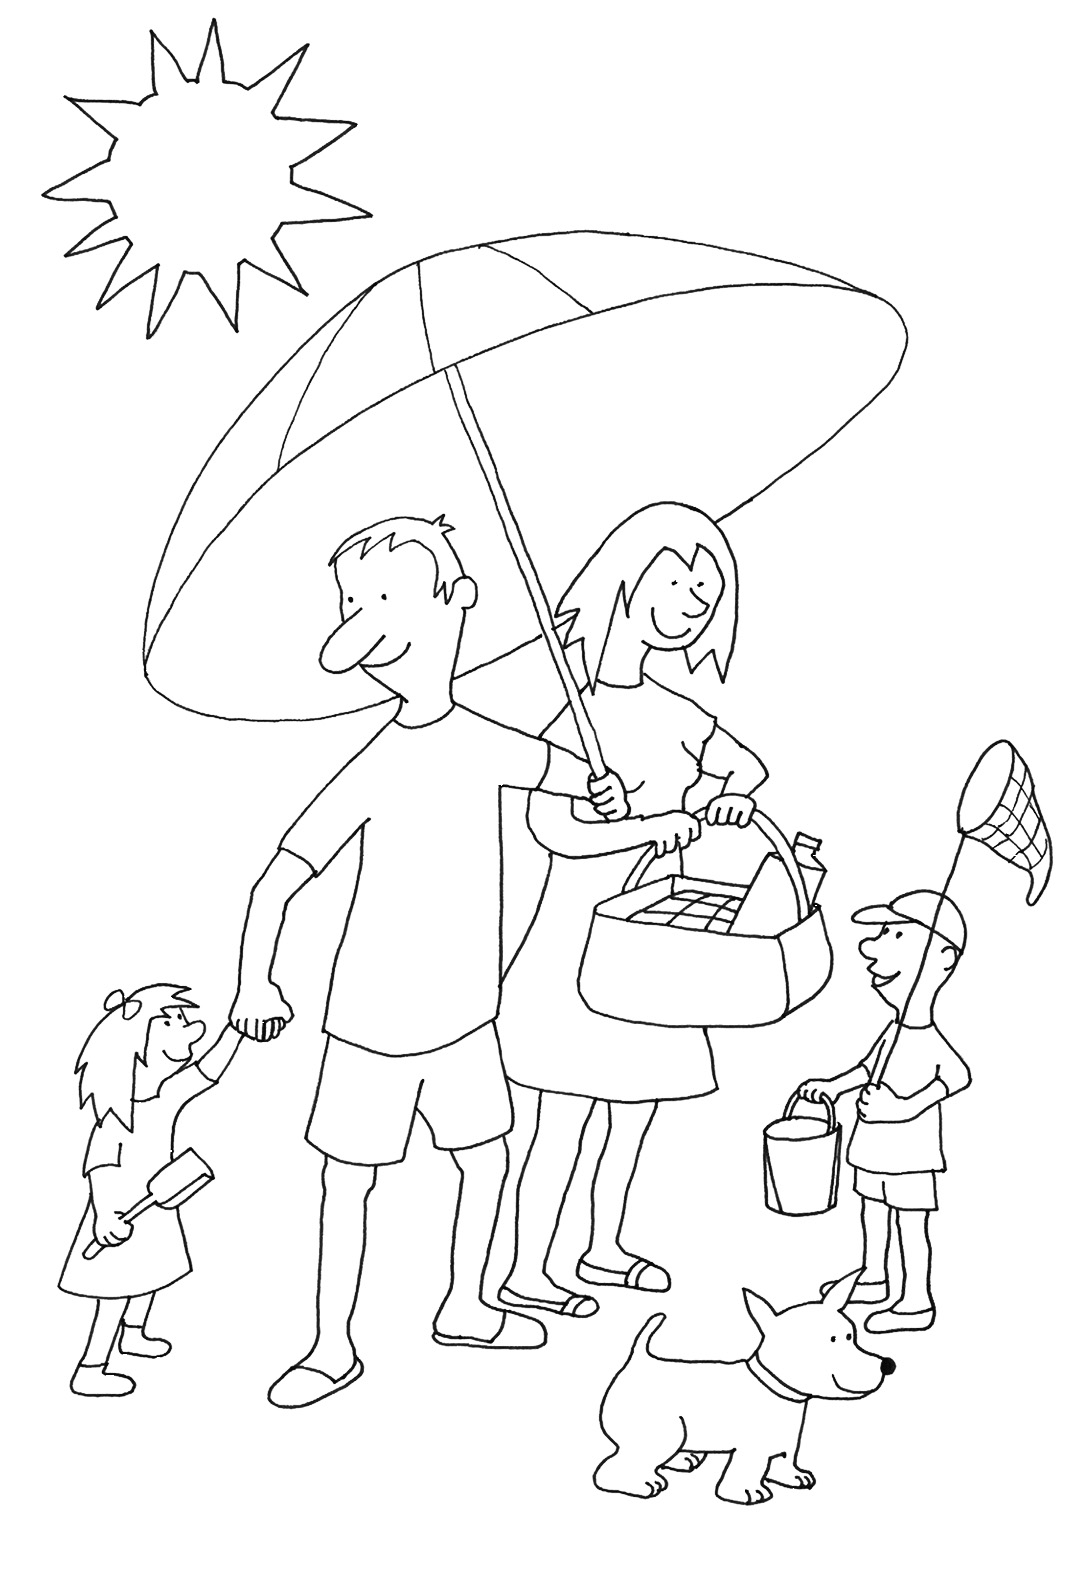 1075x1594 Summer Coloring Pages To Print